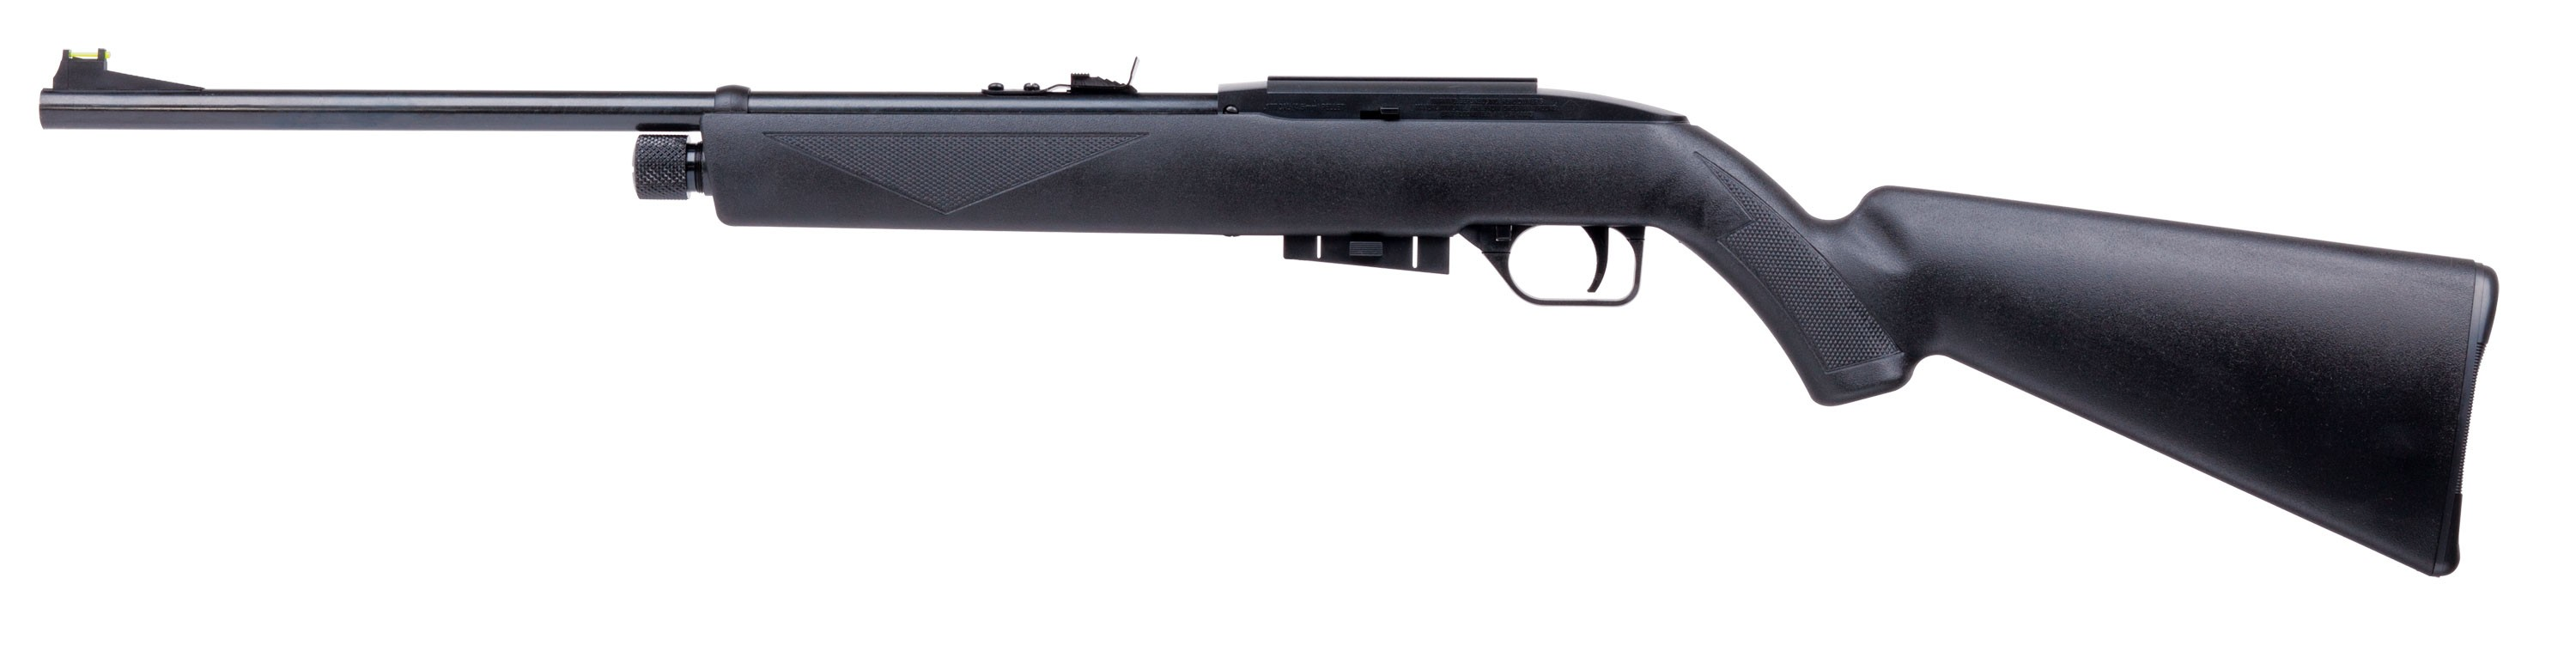 Crosman 1077 available from P.B.Dionisio & Co.